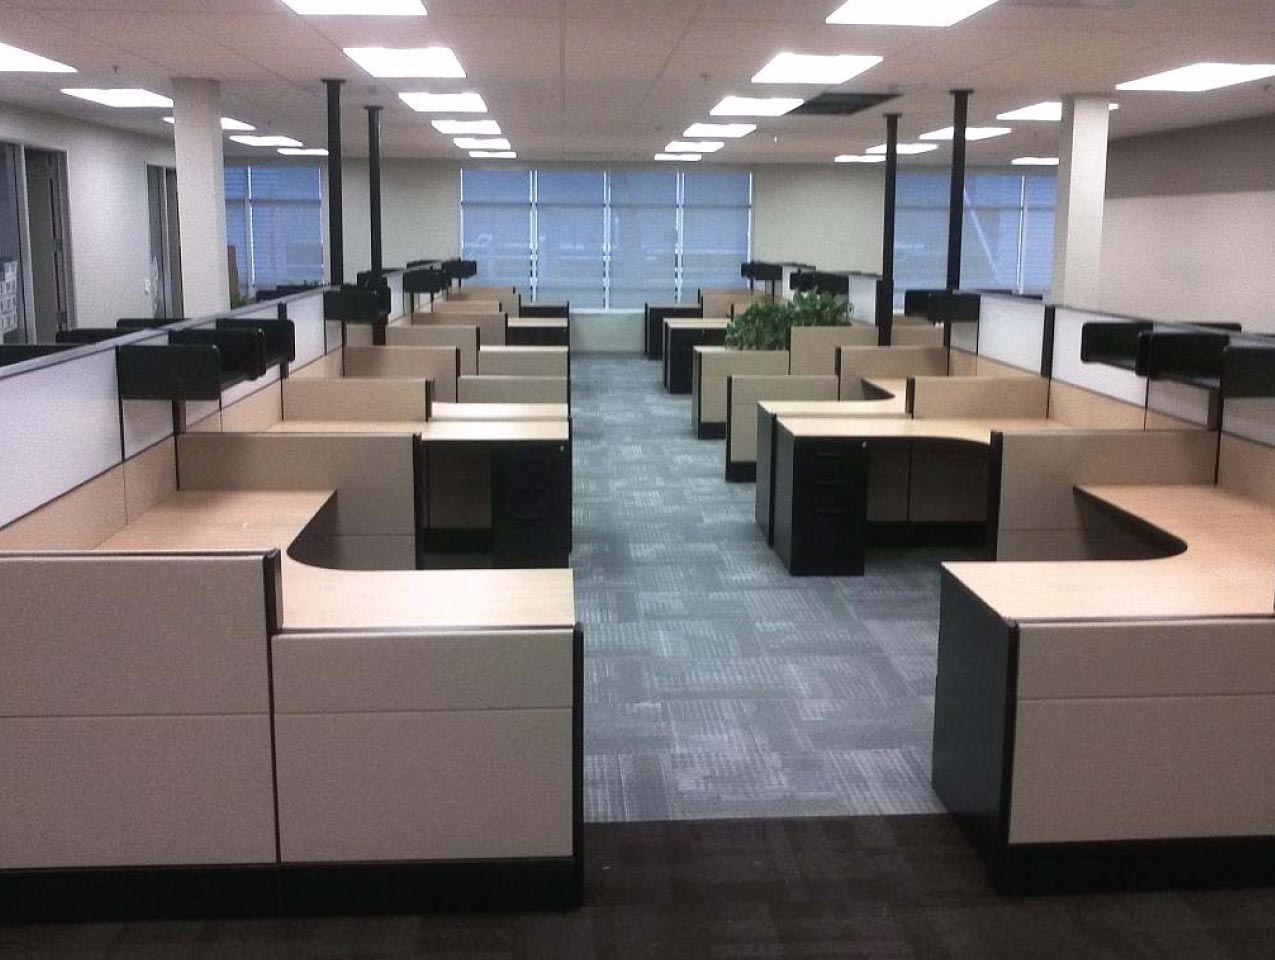 32 Used Office Furniture In Palm Desert Ca Video Evakuasi Penumpang Lion Air Jatuh